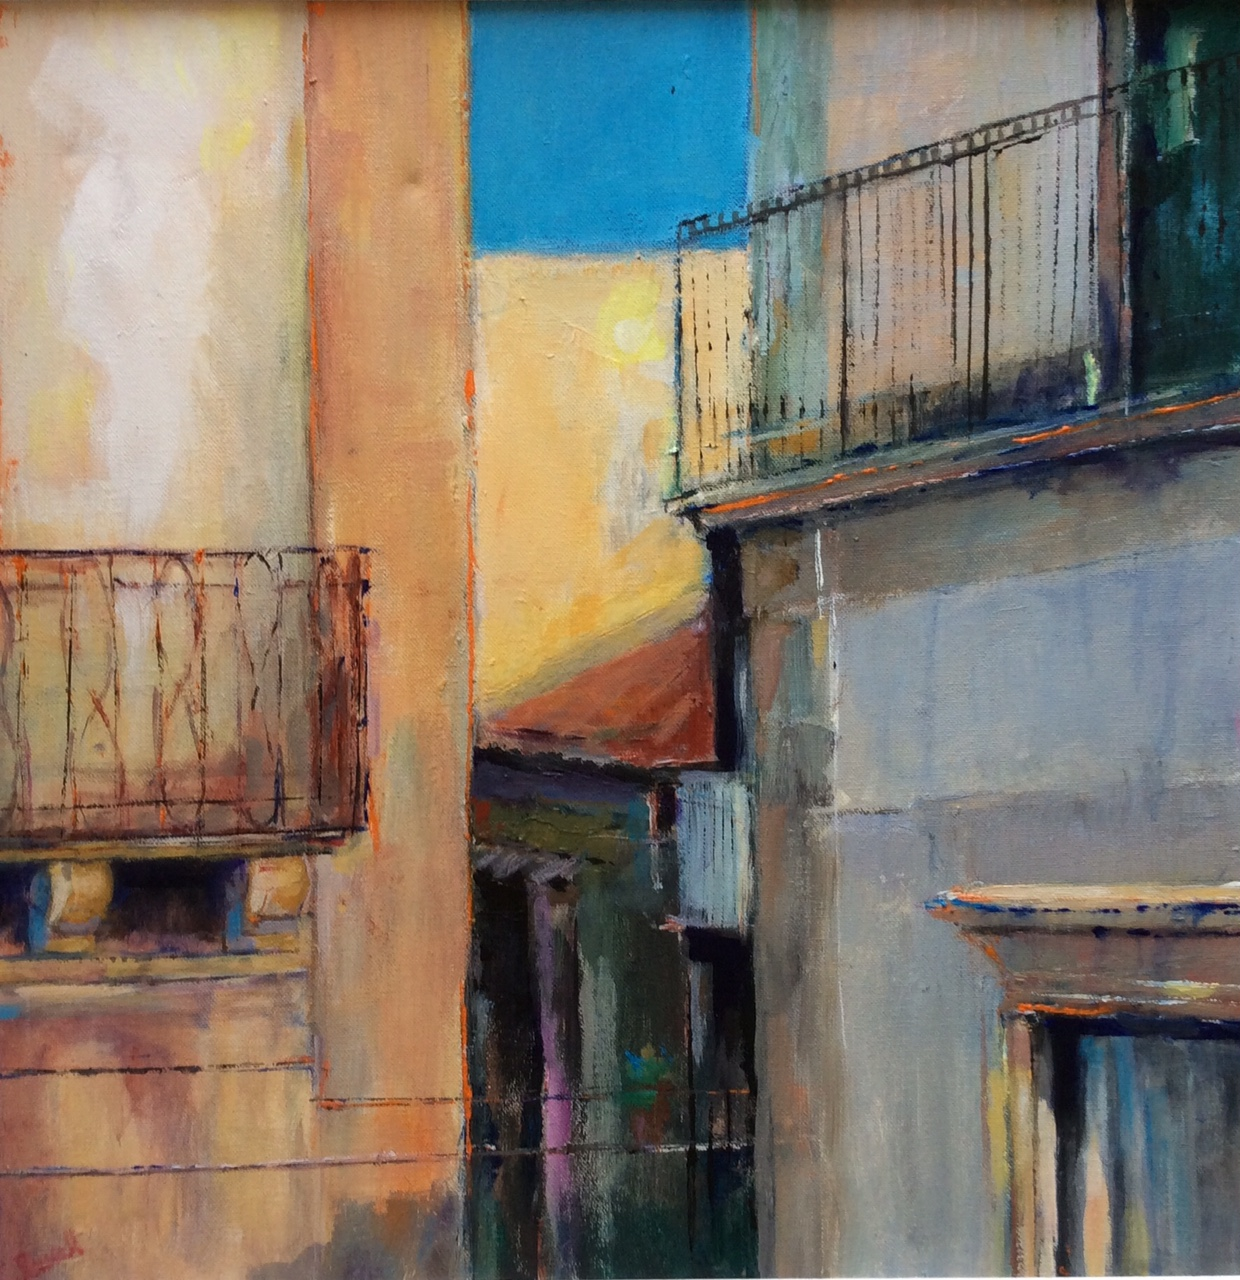 View from the terrace, Noto, Sicily - acrylic on canvas